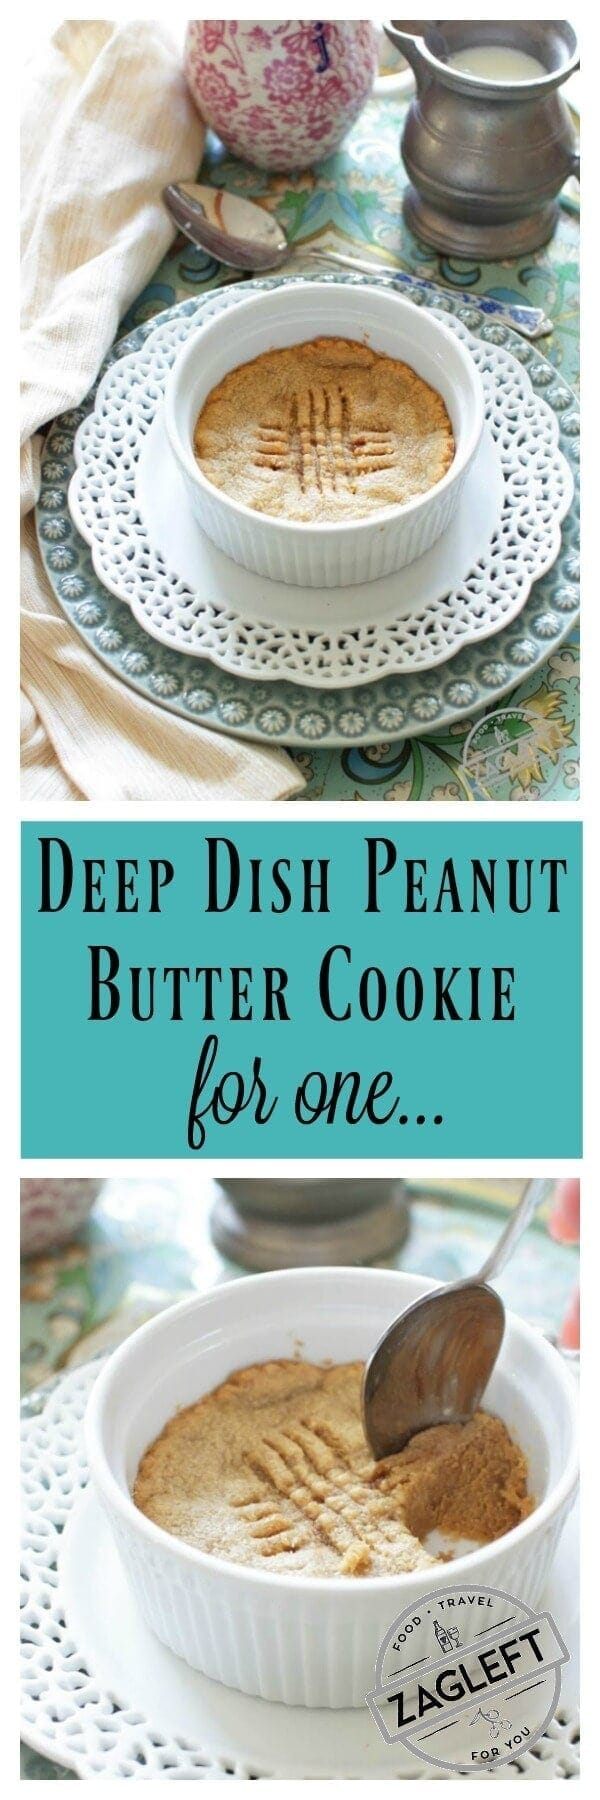 deep dish peanut butter cookie for one | One Dish Kitchen